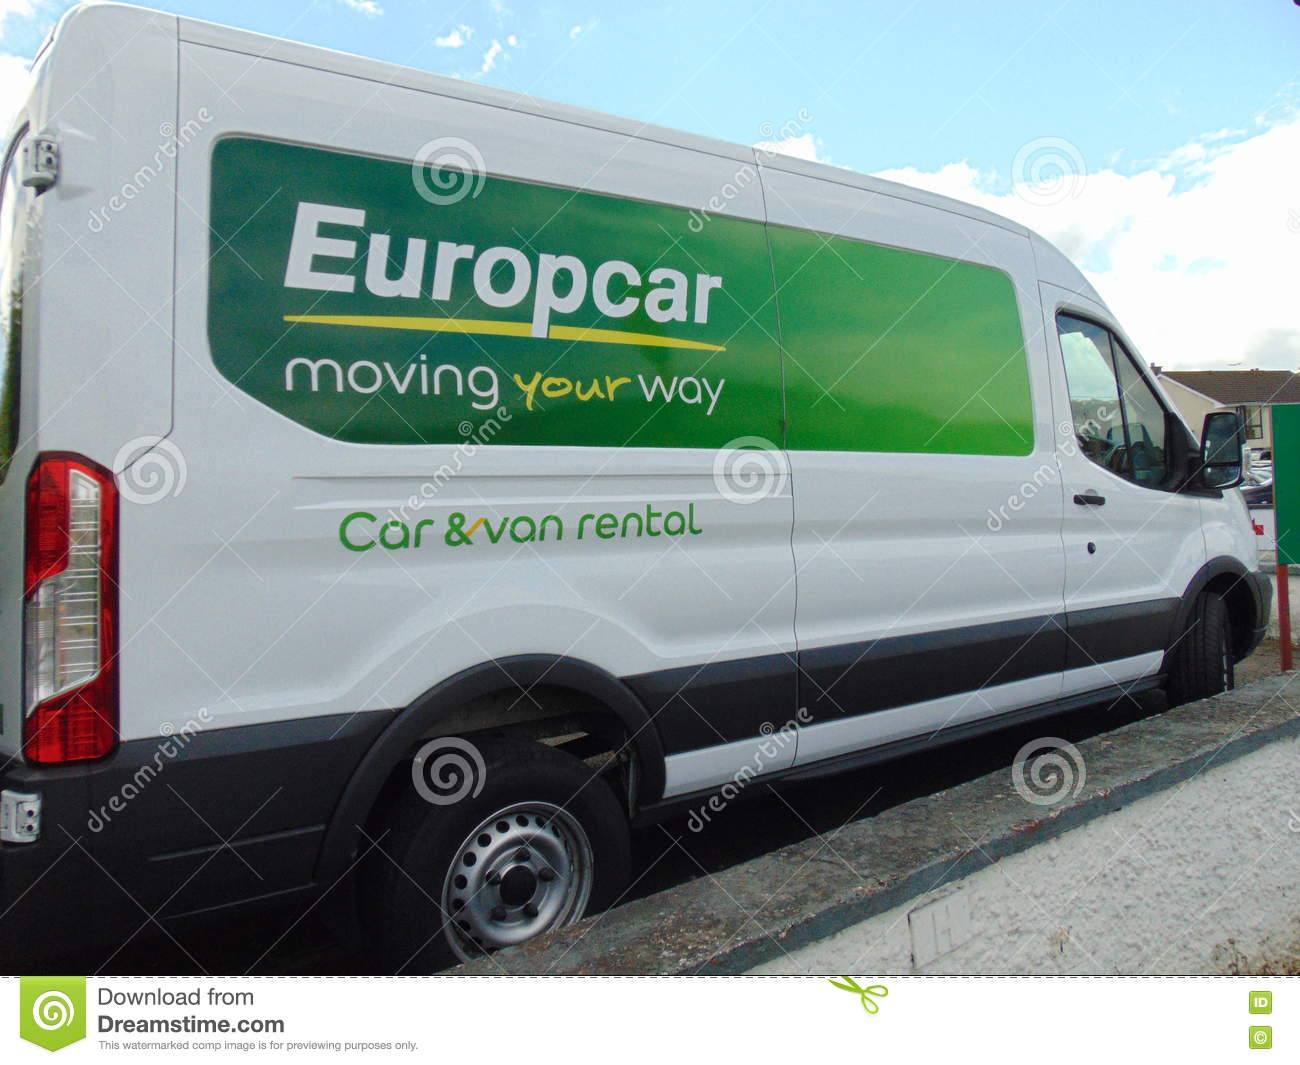 ed28b22a086bb0 Europcar Van editorial stock photo. Image of irish